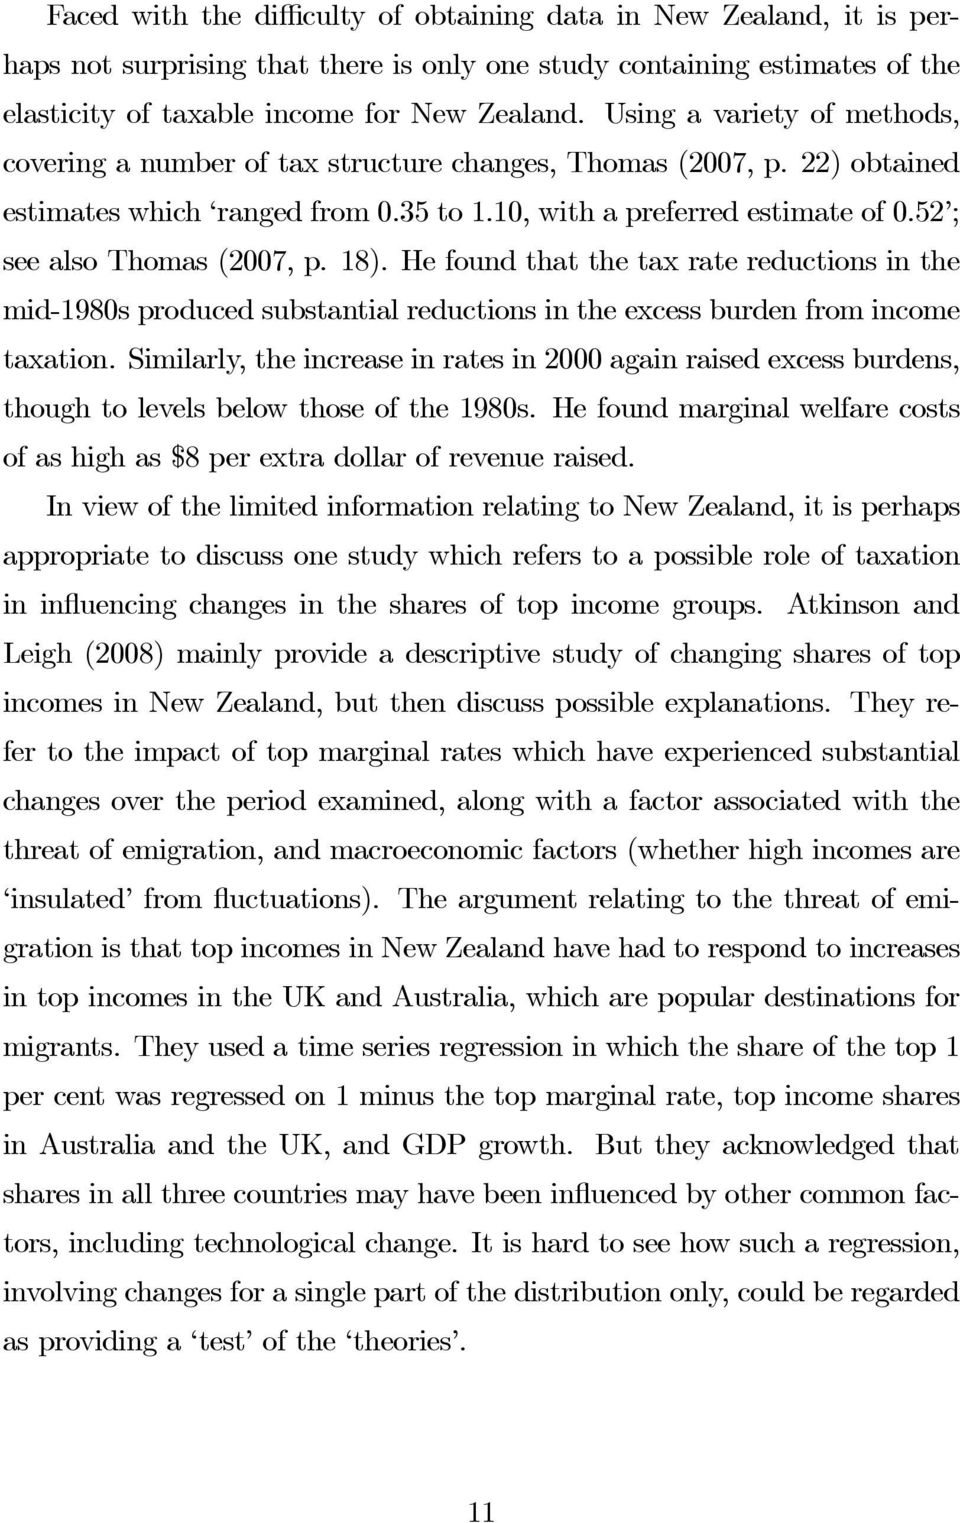 52 ; seealsothomas(2007,p.18).hefoundthatthetaxratereductionsinthe mid-1980s produced substantial reductions in the excess burden from income taxation.